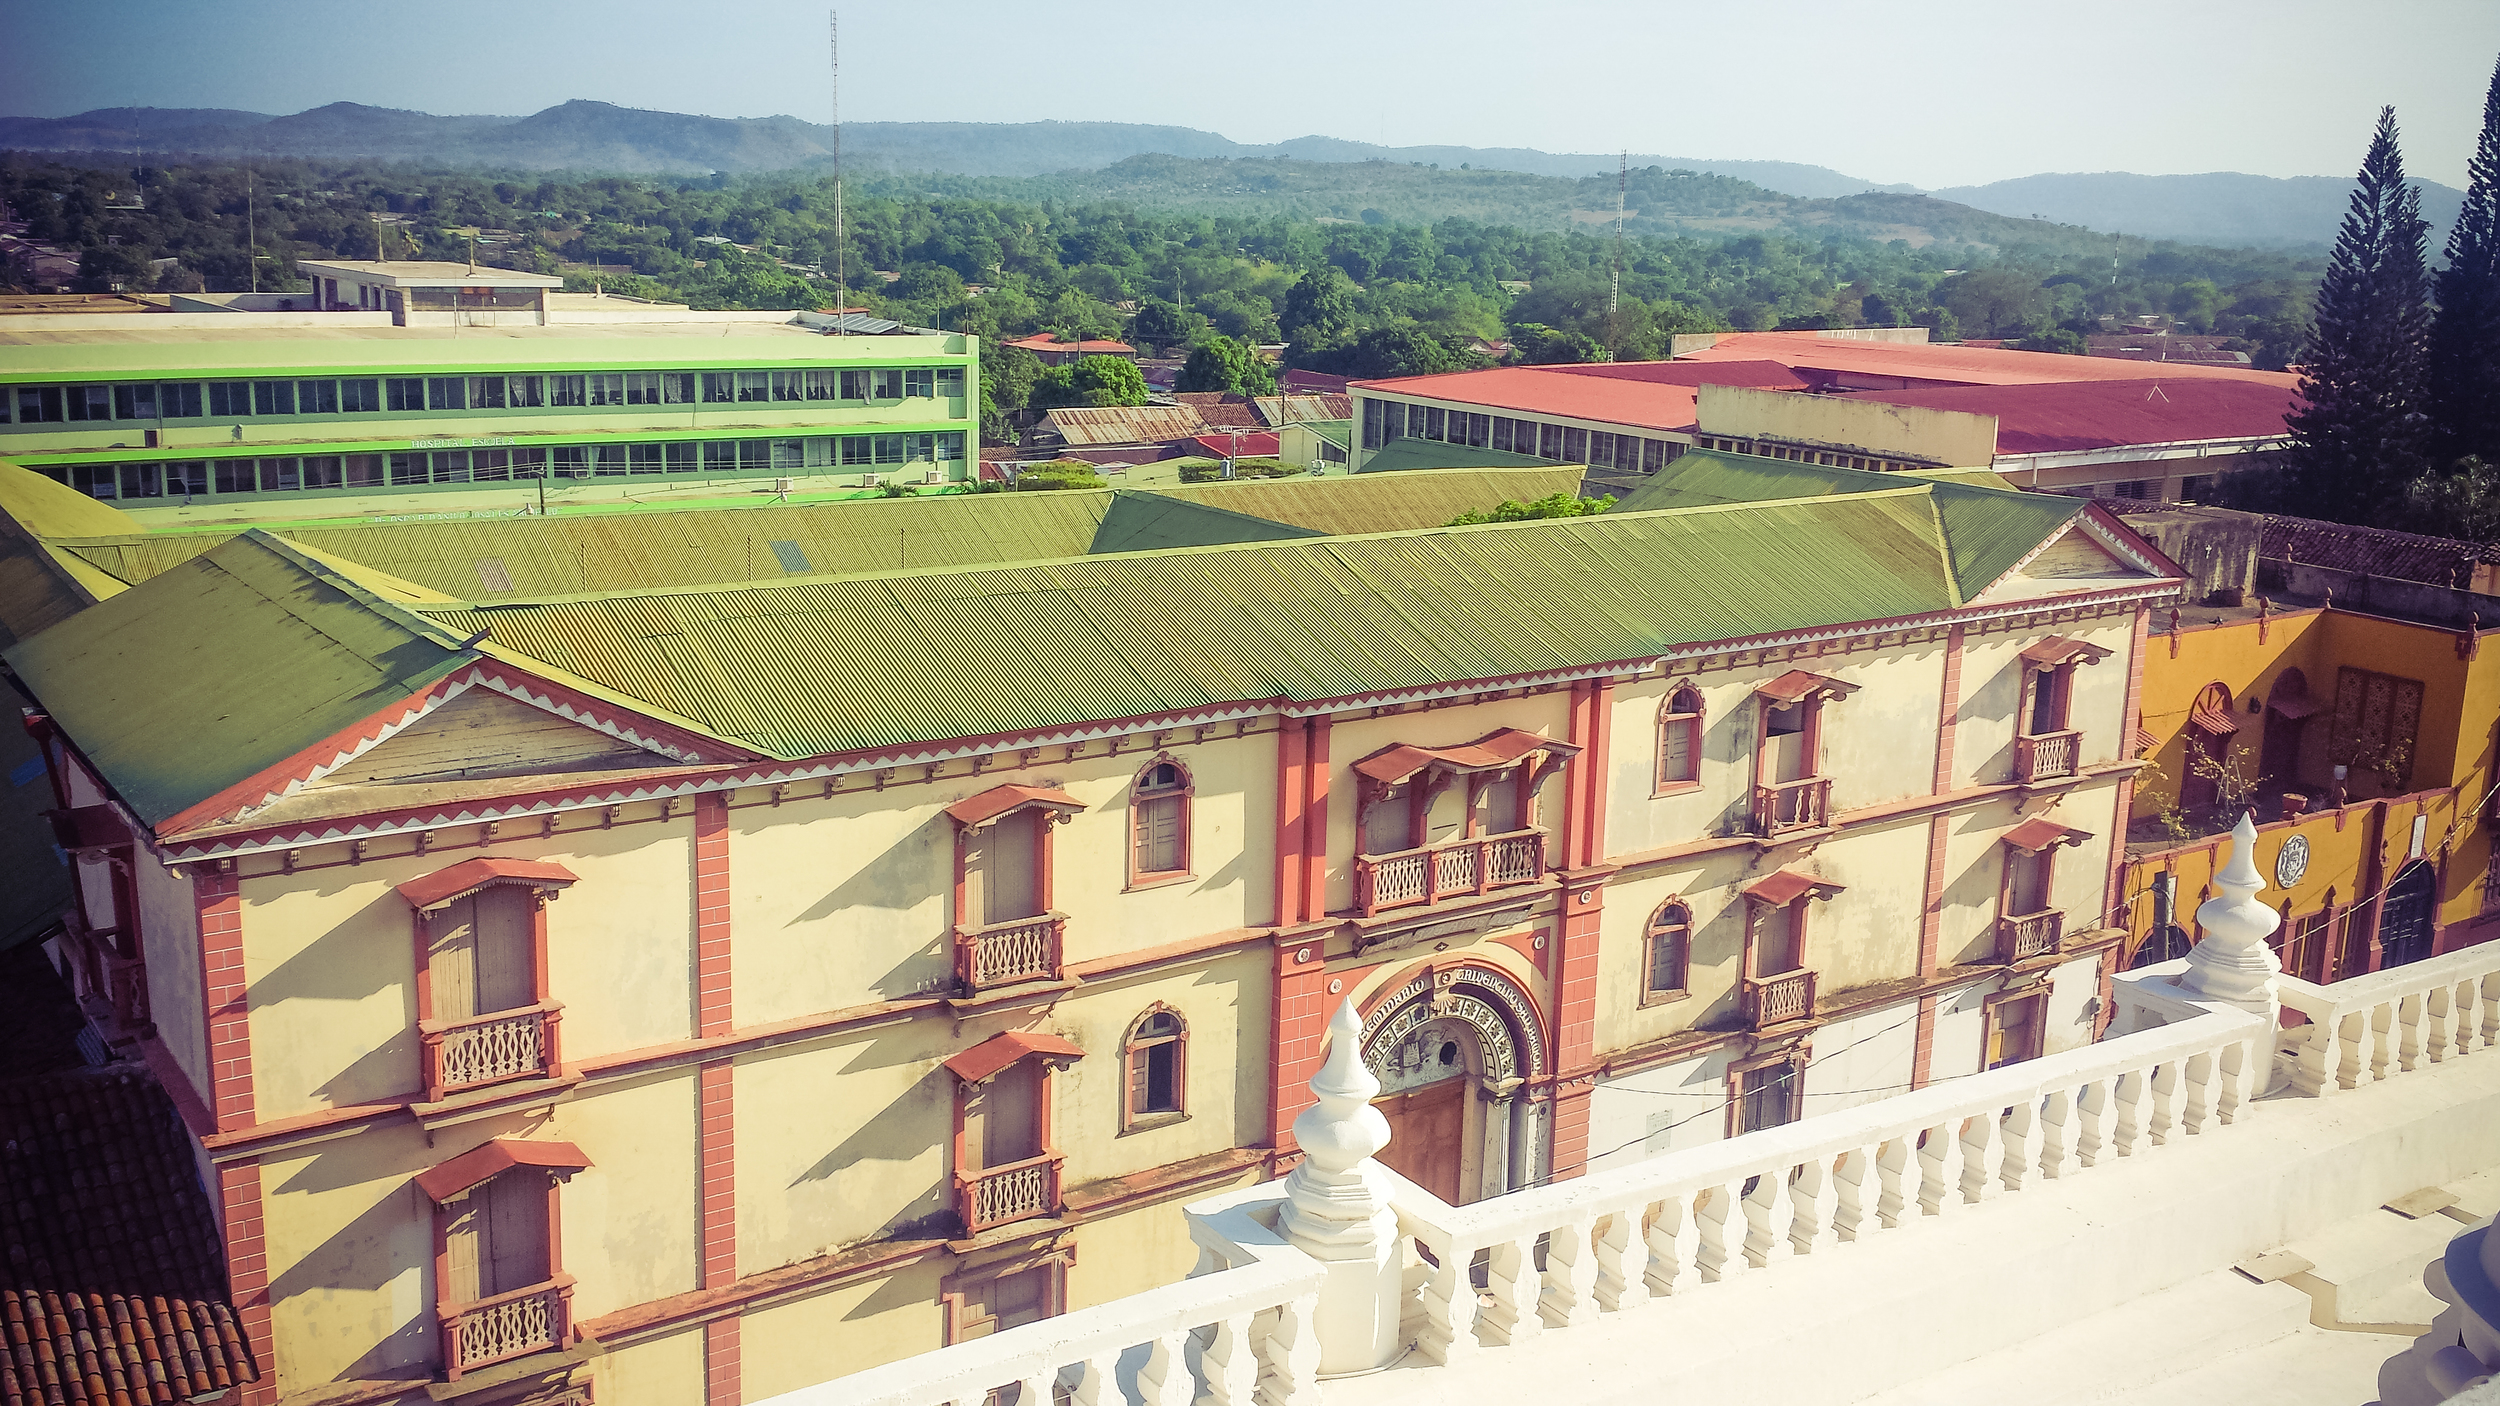 A view of Colegio Tridentino San Ramon built in 1680. That's old indeed.